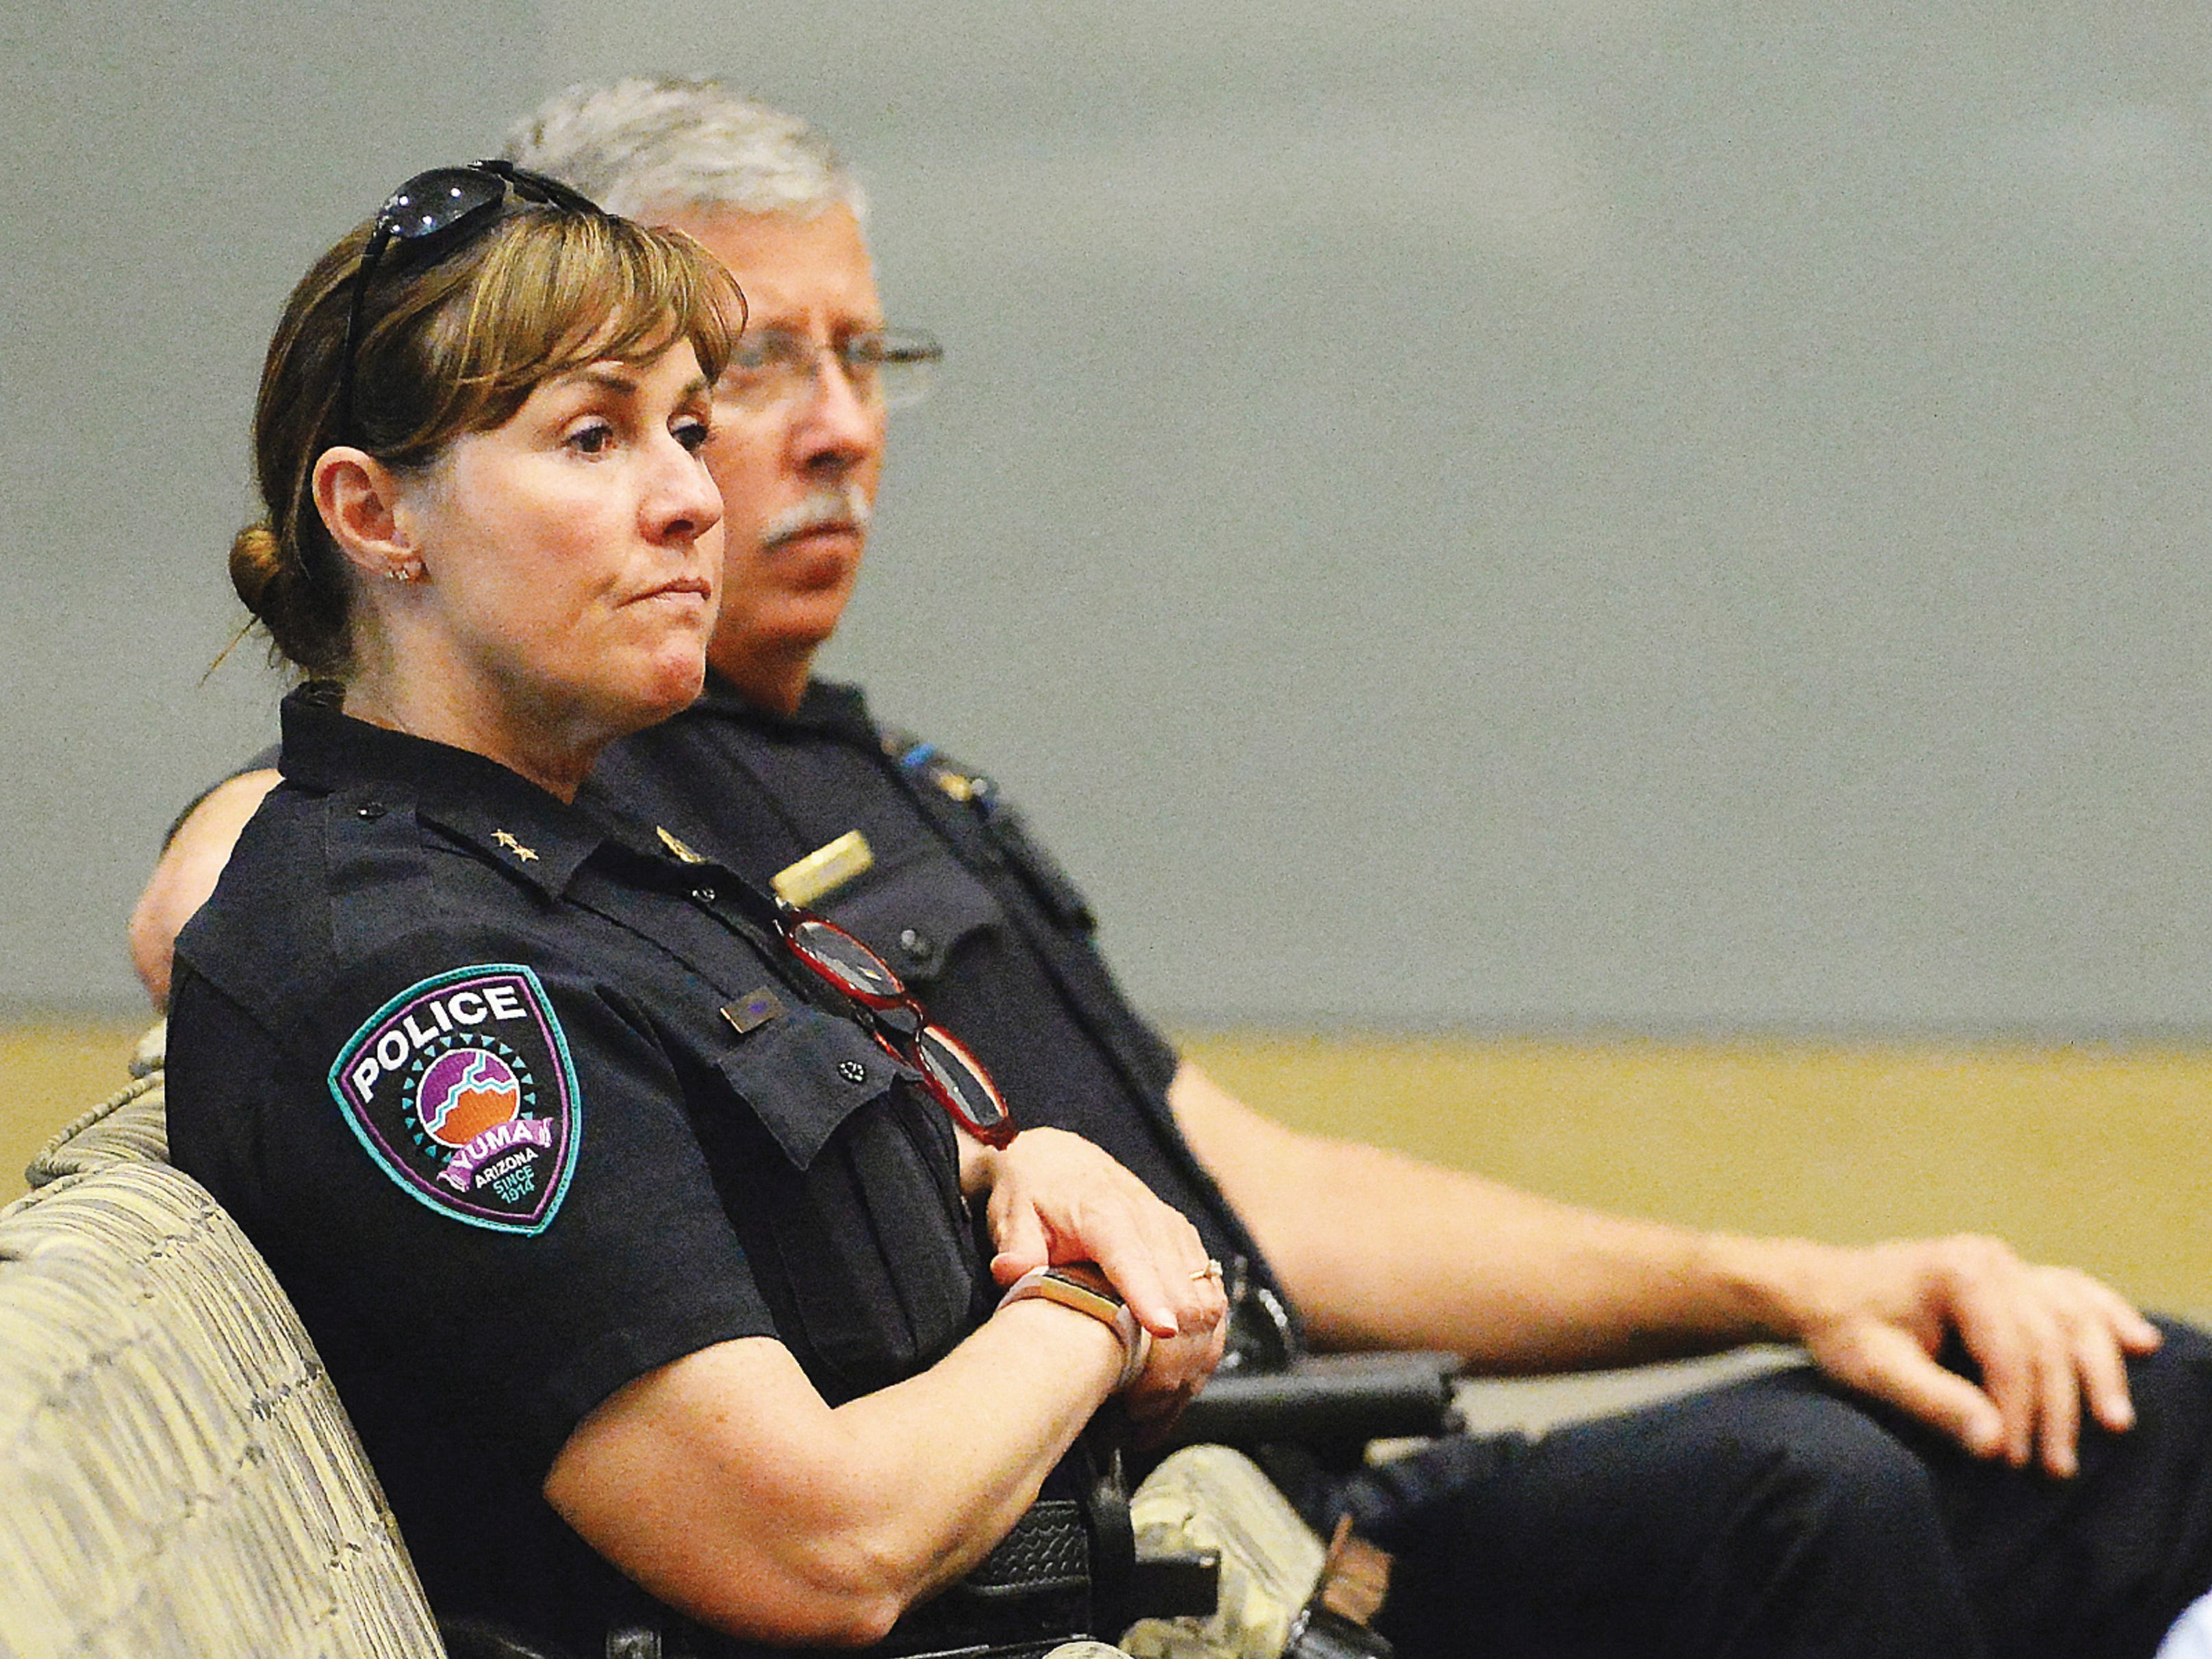 Incoming Yuma Police Department Chief Susan Smith (left) and Capt. Stephen Suho Jr. listen to Yuma Mayor Doug Nicholls' news conference about the current humanitarian crisis in the border region due to high volumes of illegal migrant crossings on March 28, 2019, in Yuma. Nicholls said the city is working with various non-governmental organizations to make sure the families have temporary housing, food, medical care and help with travel to their intended destinations.